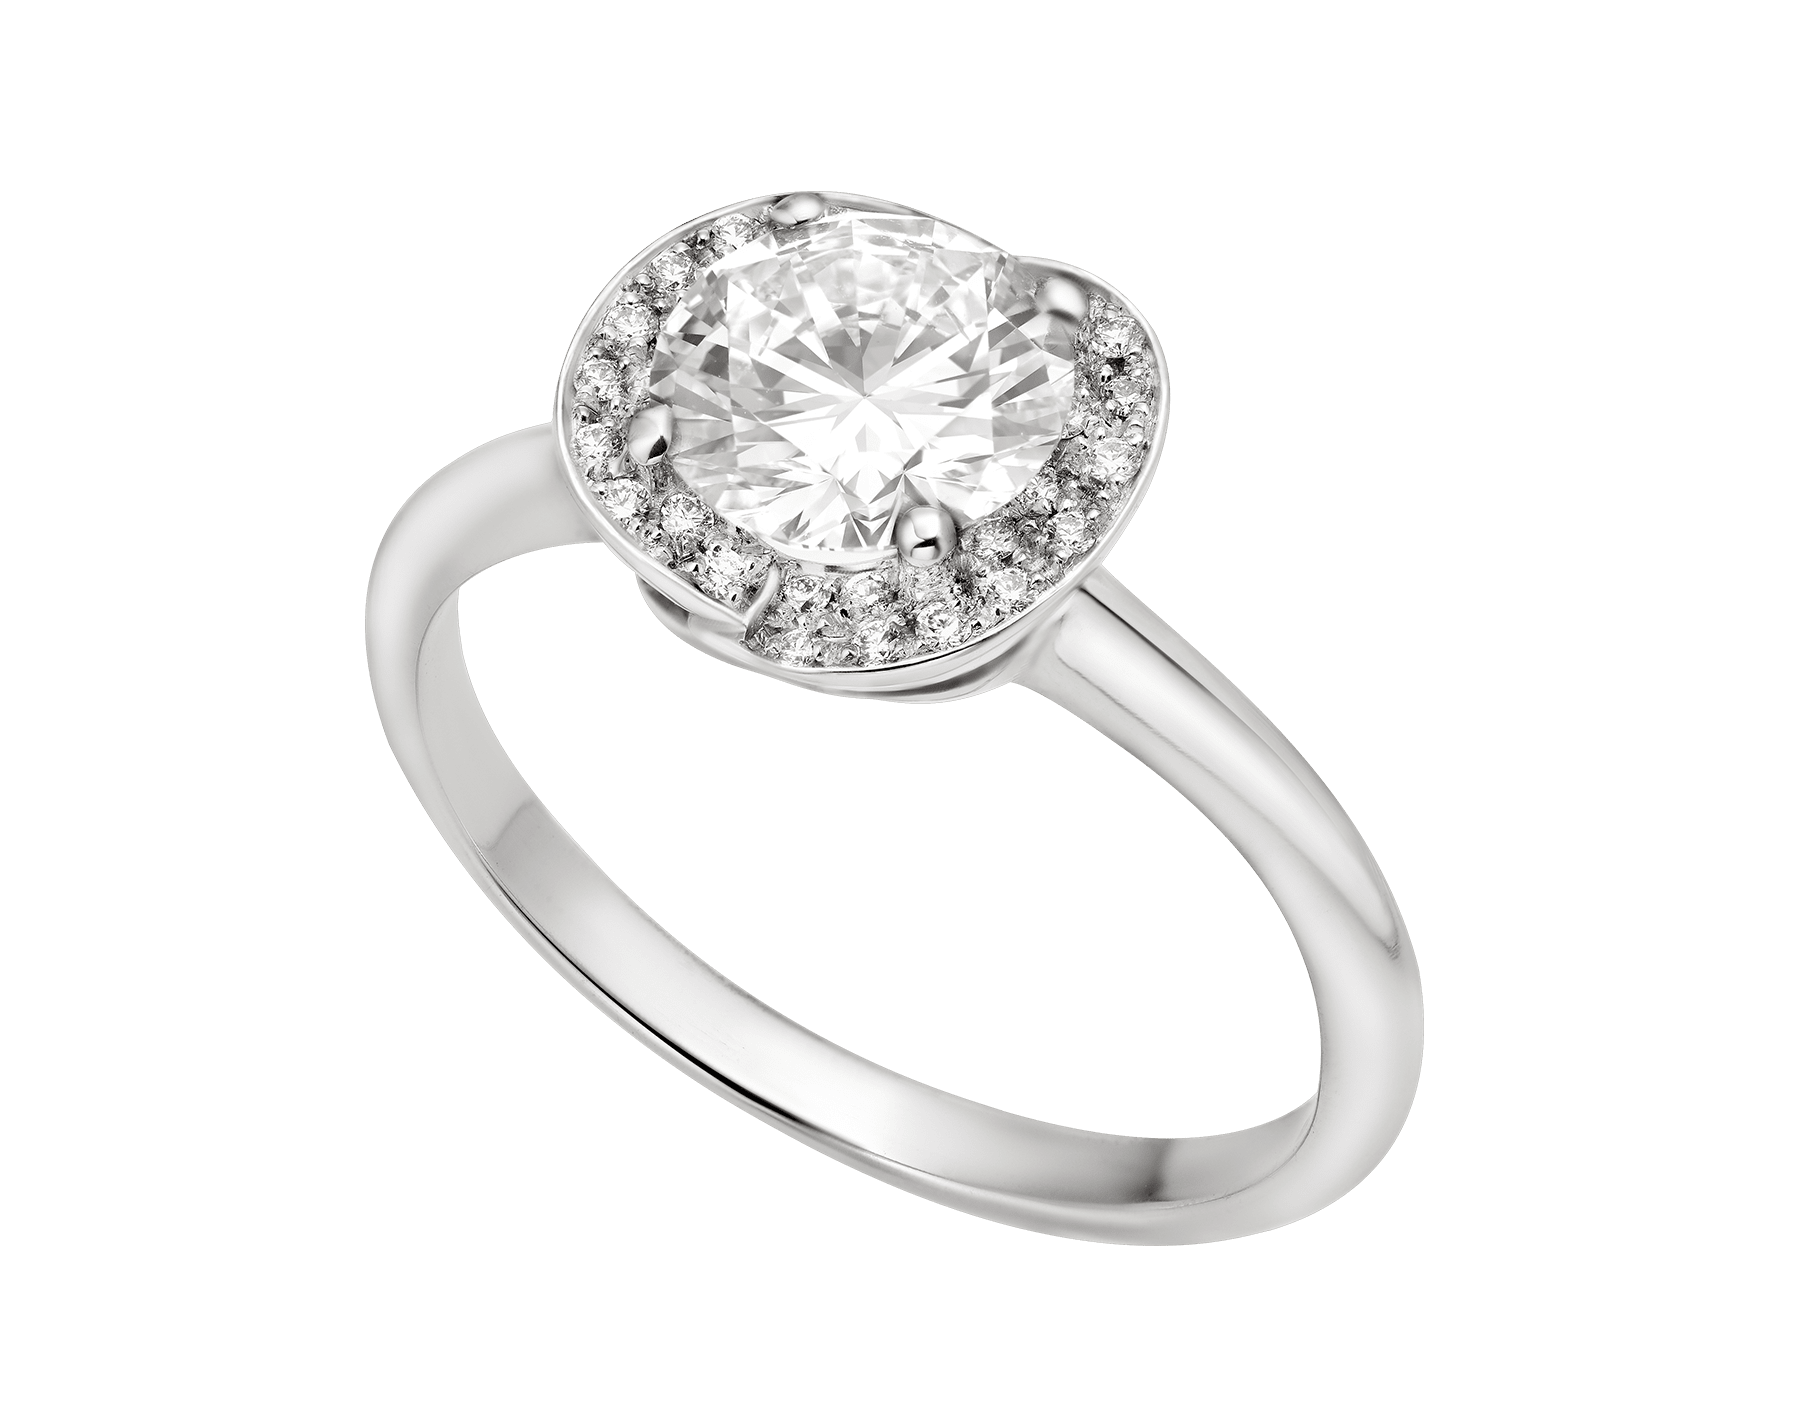 Incontro d'Amore platinum ring set with a round brilliant-cut diamond and a halo of pavé diamonds. 355436 image 2